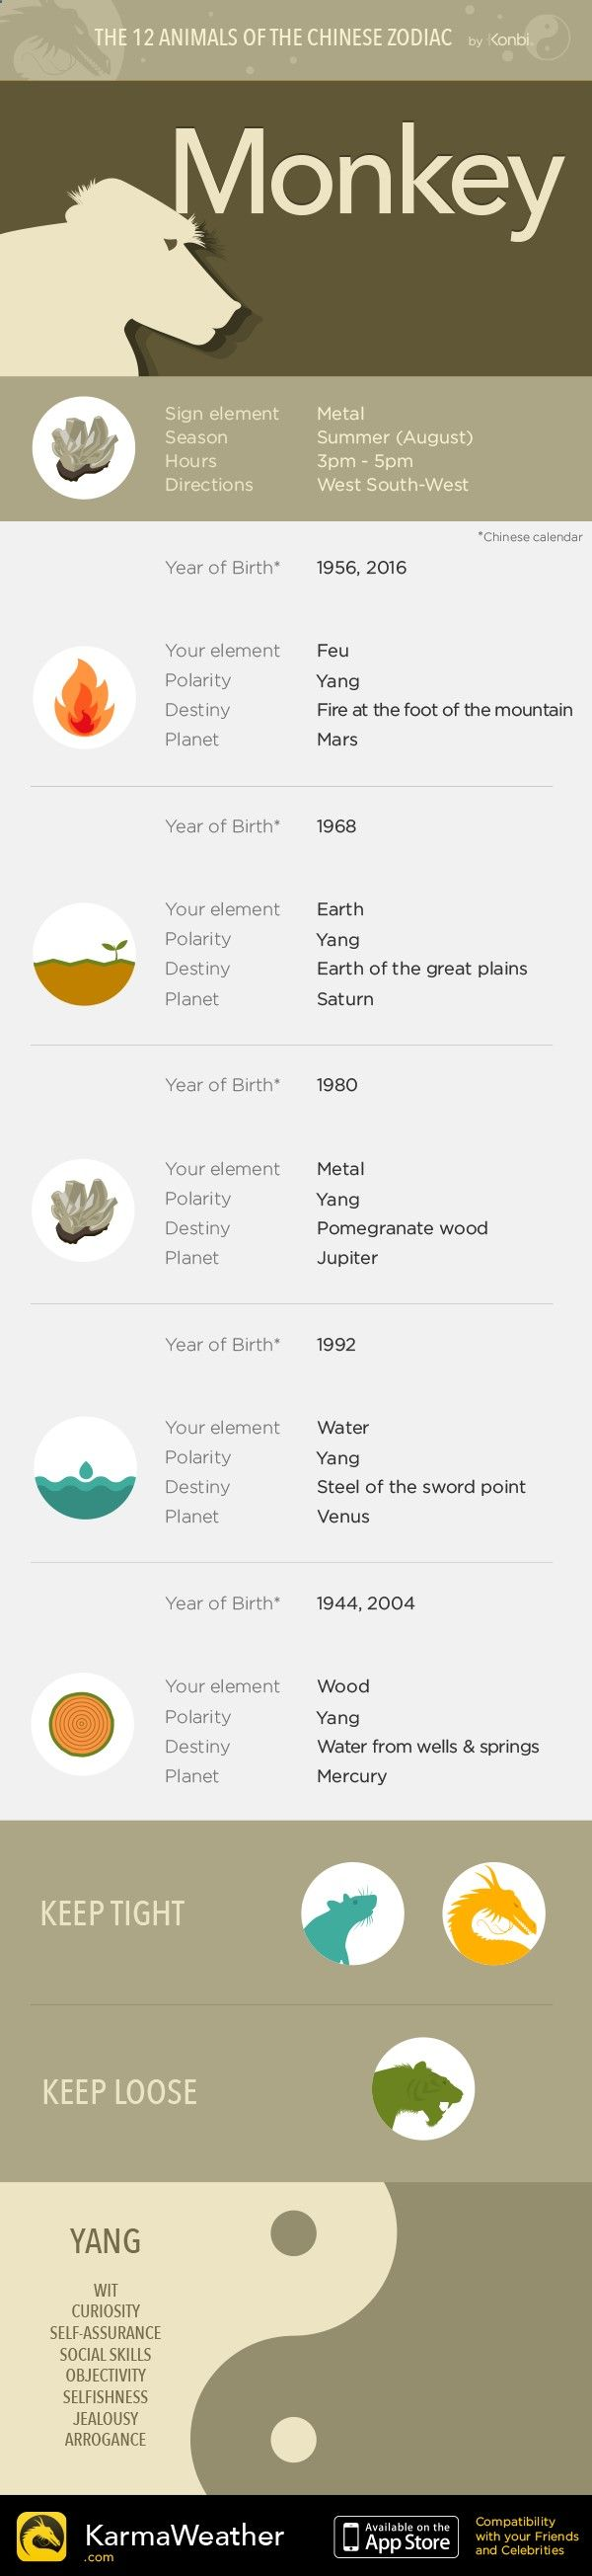 Sign of the Monkey - The 12 animals of the Chinese Zodiac by KarmaWeather, Free Chinese horoscope iPhone apphttp://www.karmaweather.com/monkey